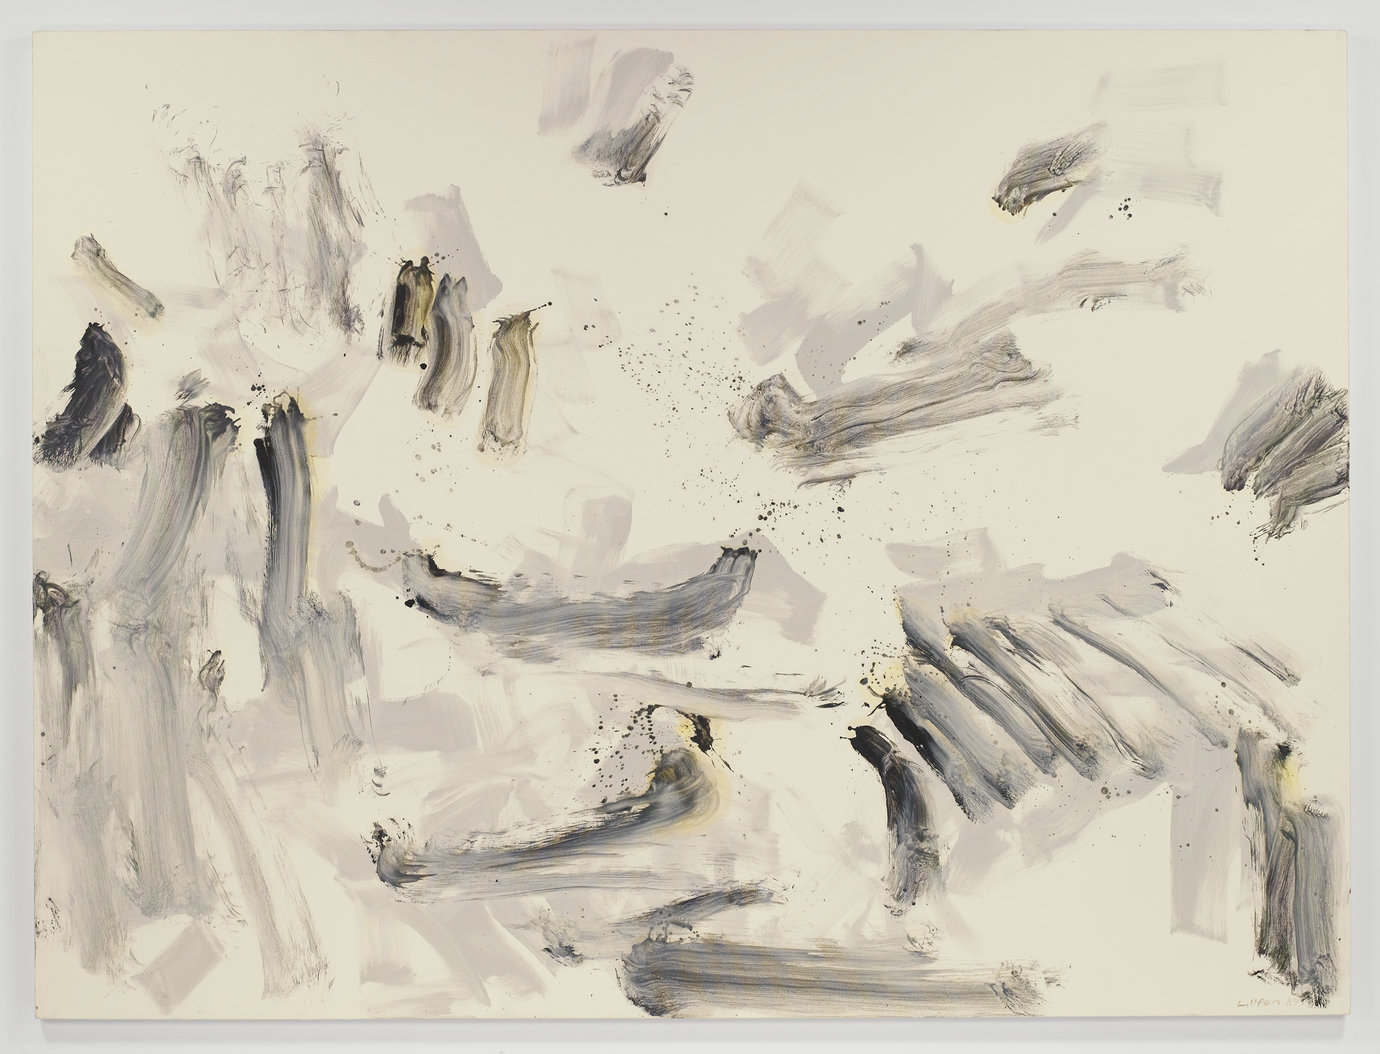 ", 1989. Oil on canvas, 7' 1-7/8"" x 9' 6-1/2"" (218.2 cm x 290.9 cm)."